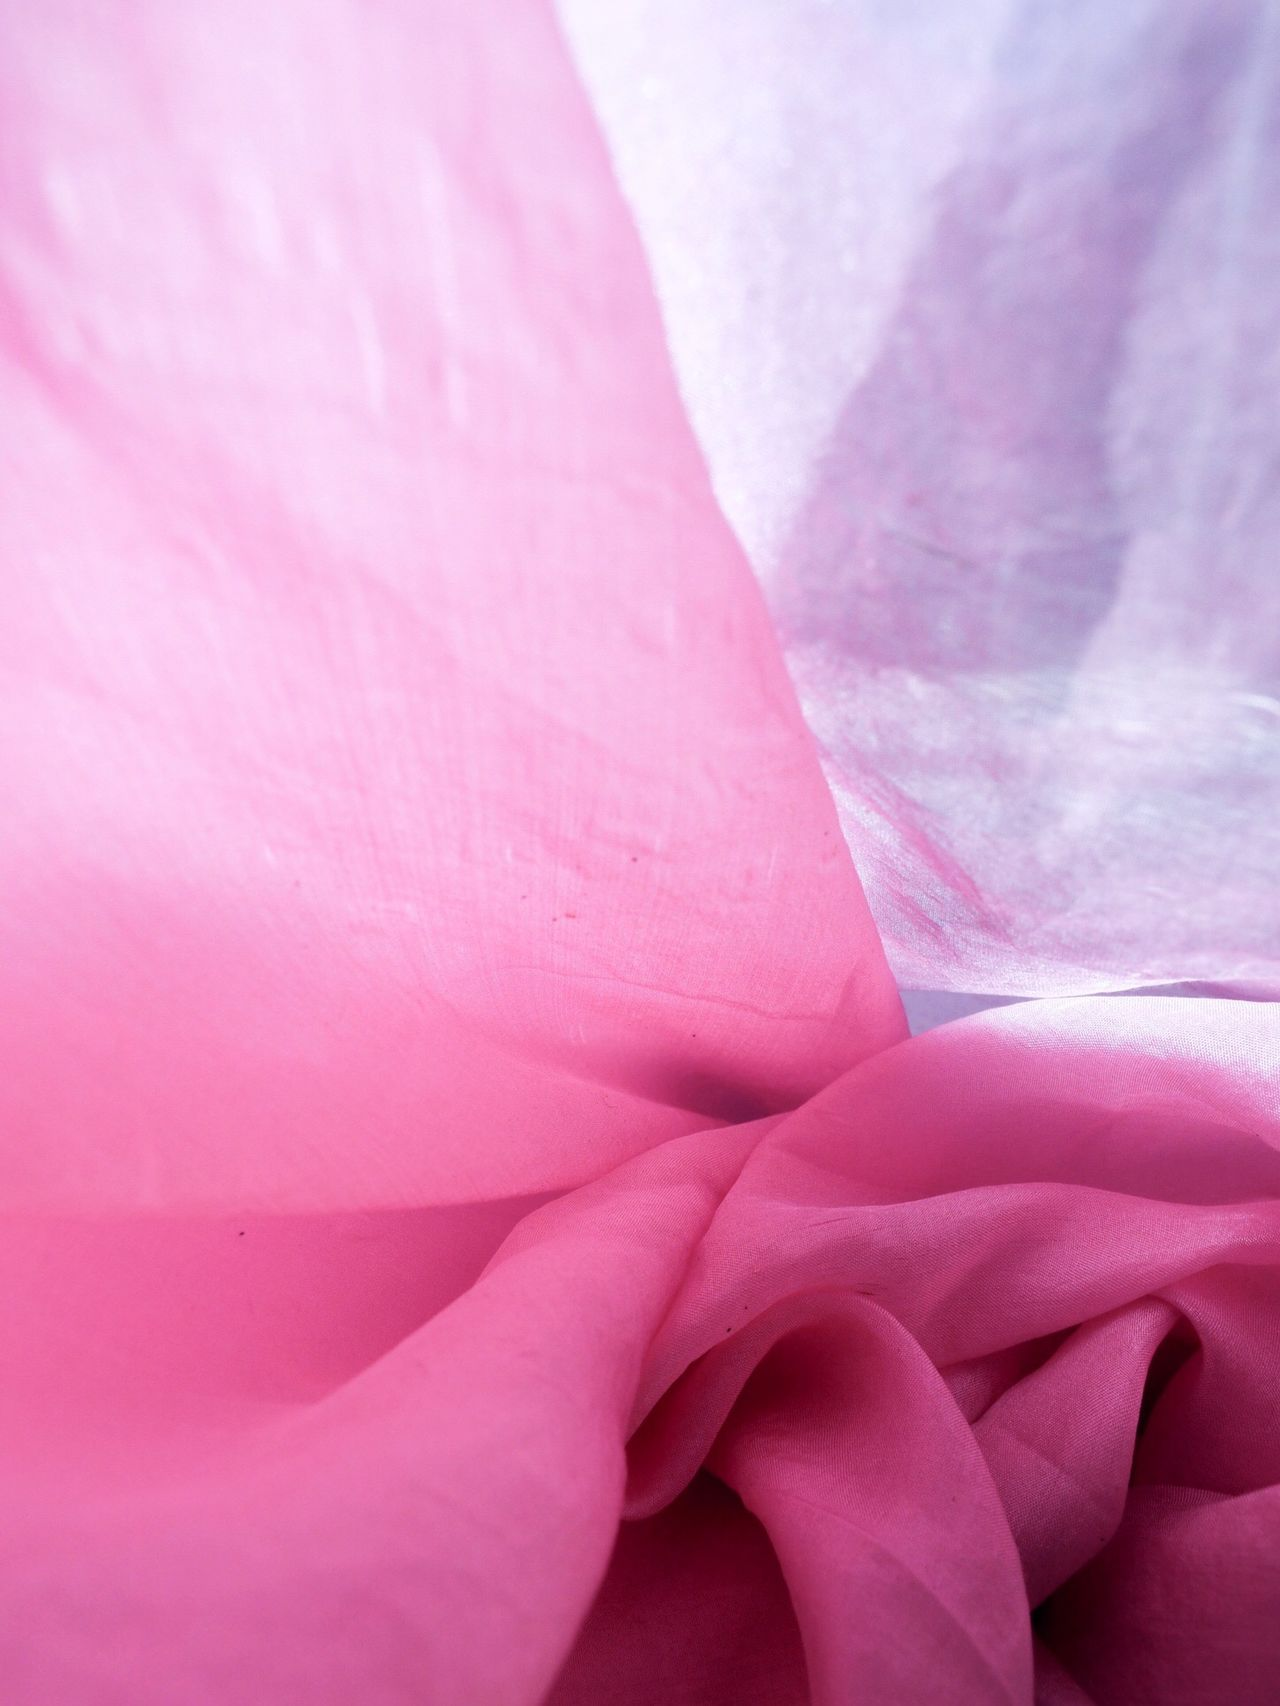 Fragility Pink Color Close-up Backgrounds Full Frame Freshness Silk Fabric Light And Shadow Softness Pastel Colors